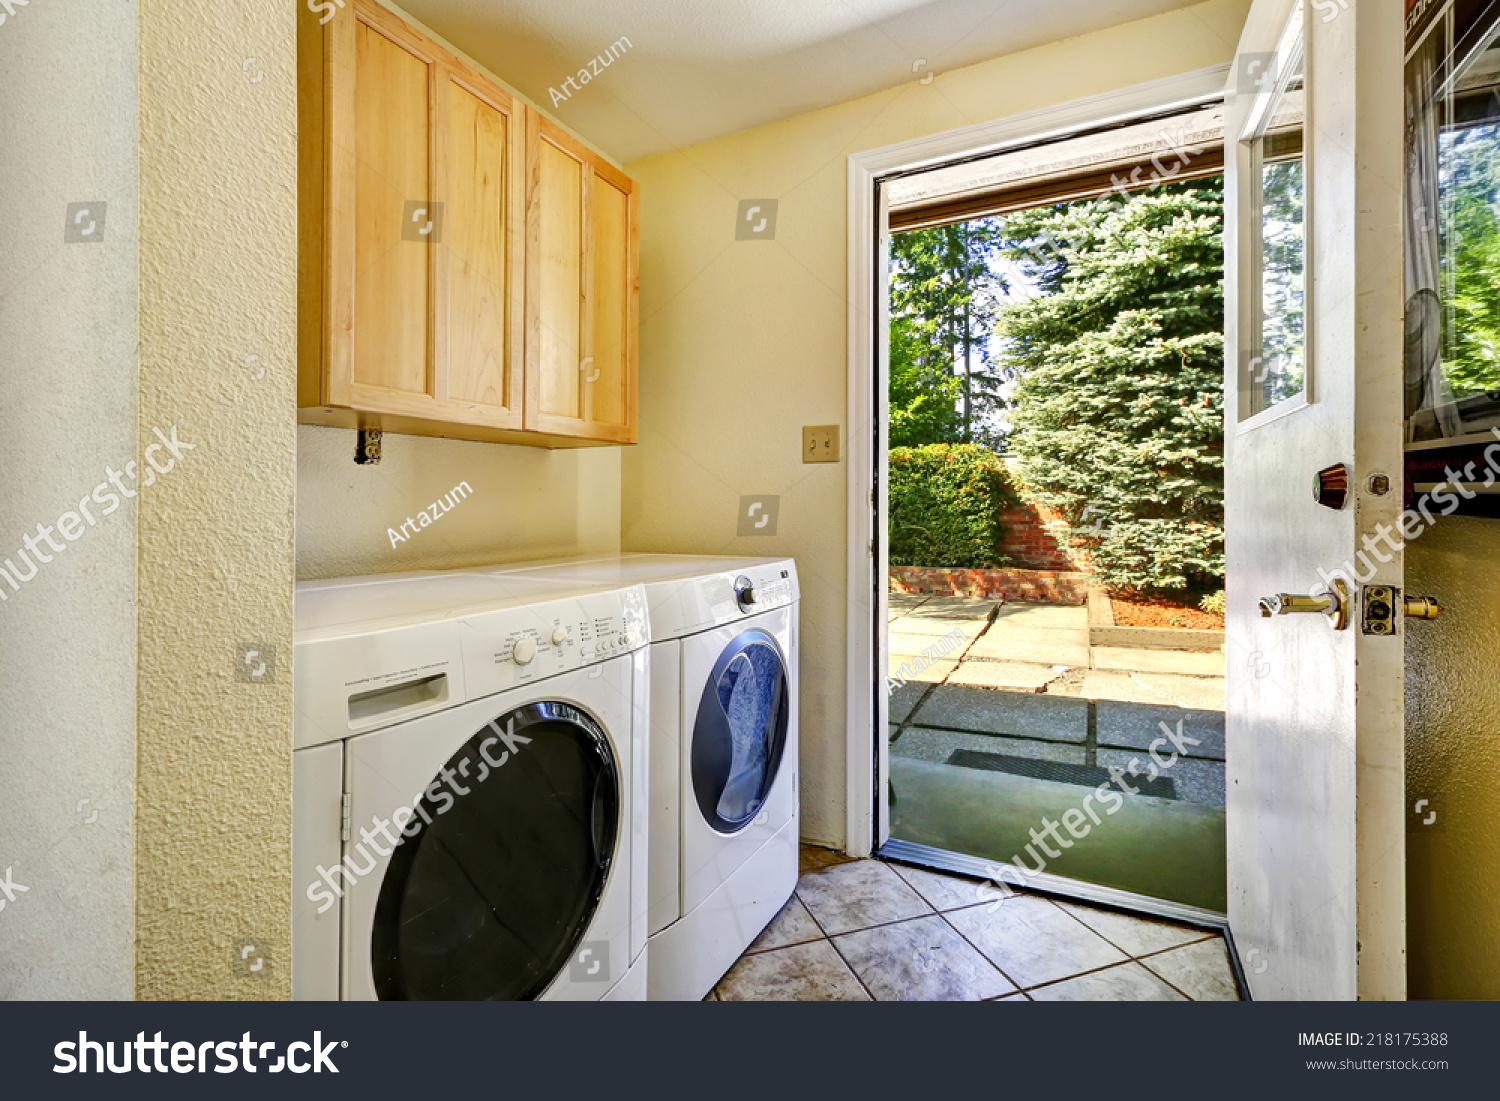 Simple Laundry Room White Appliances Old Stock Photo Edit Now 218175388